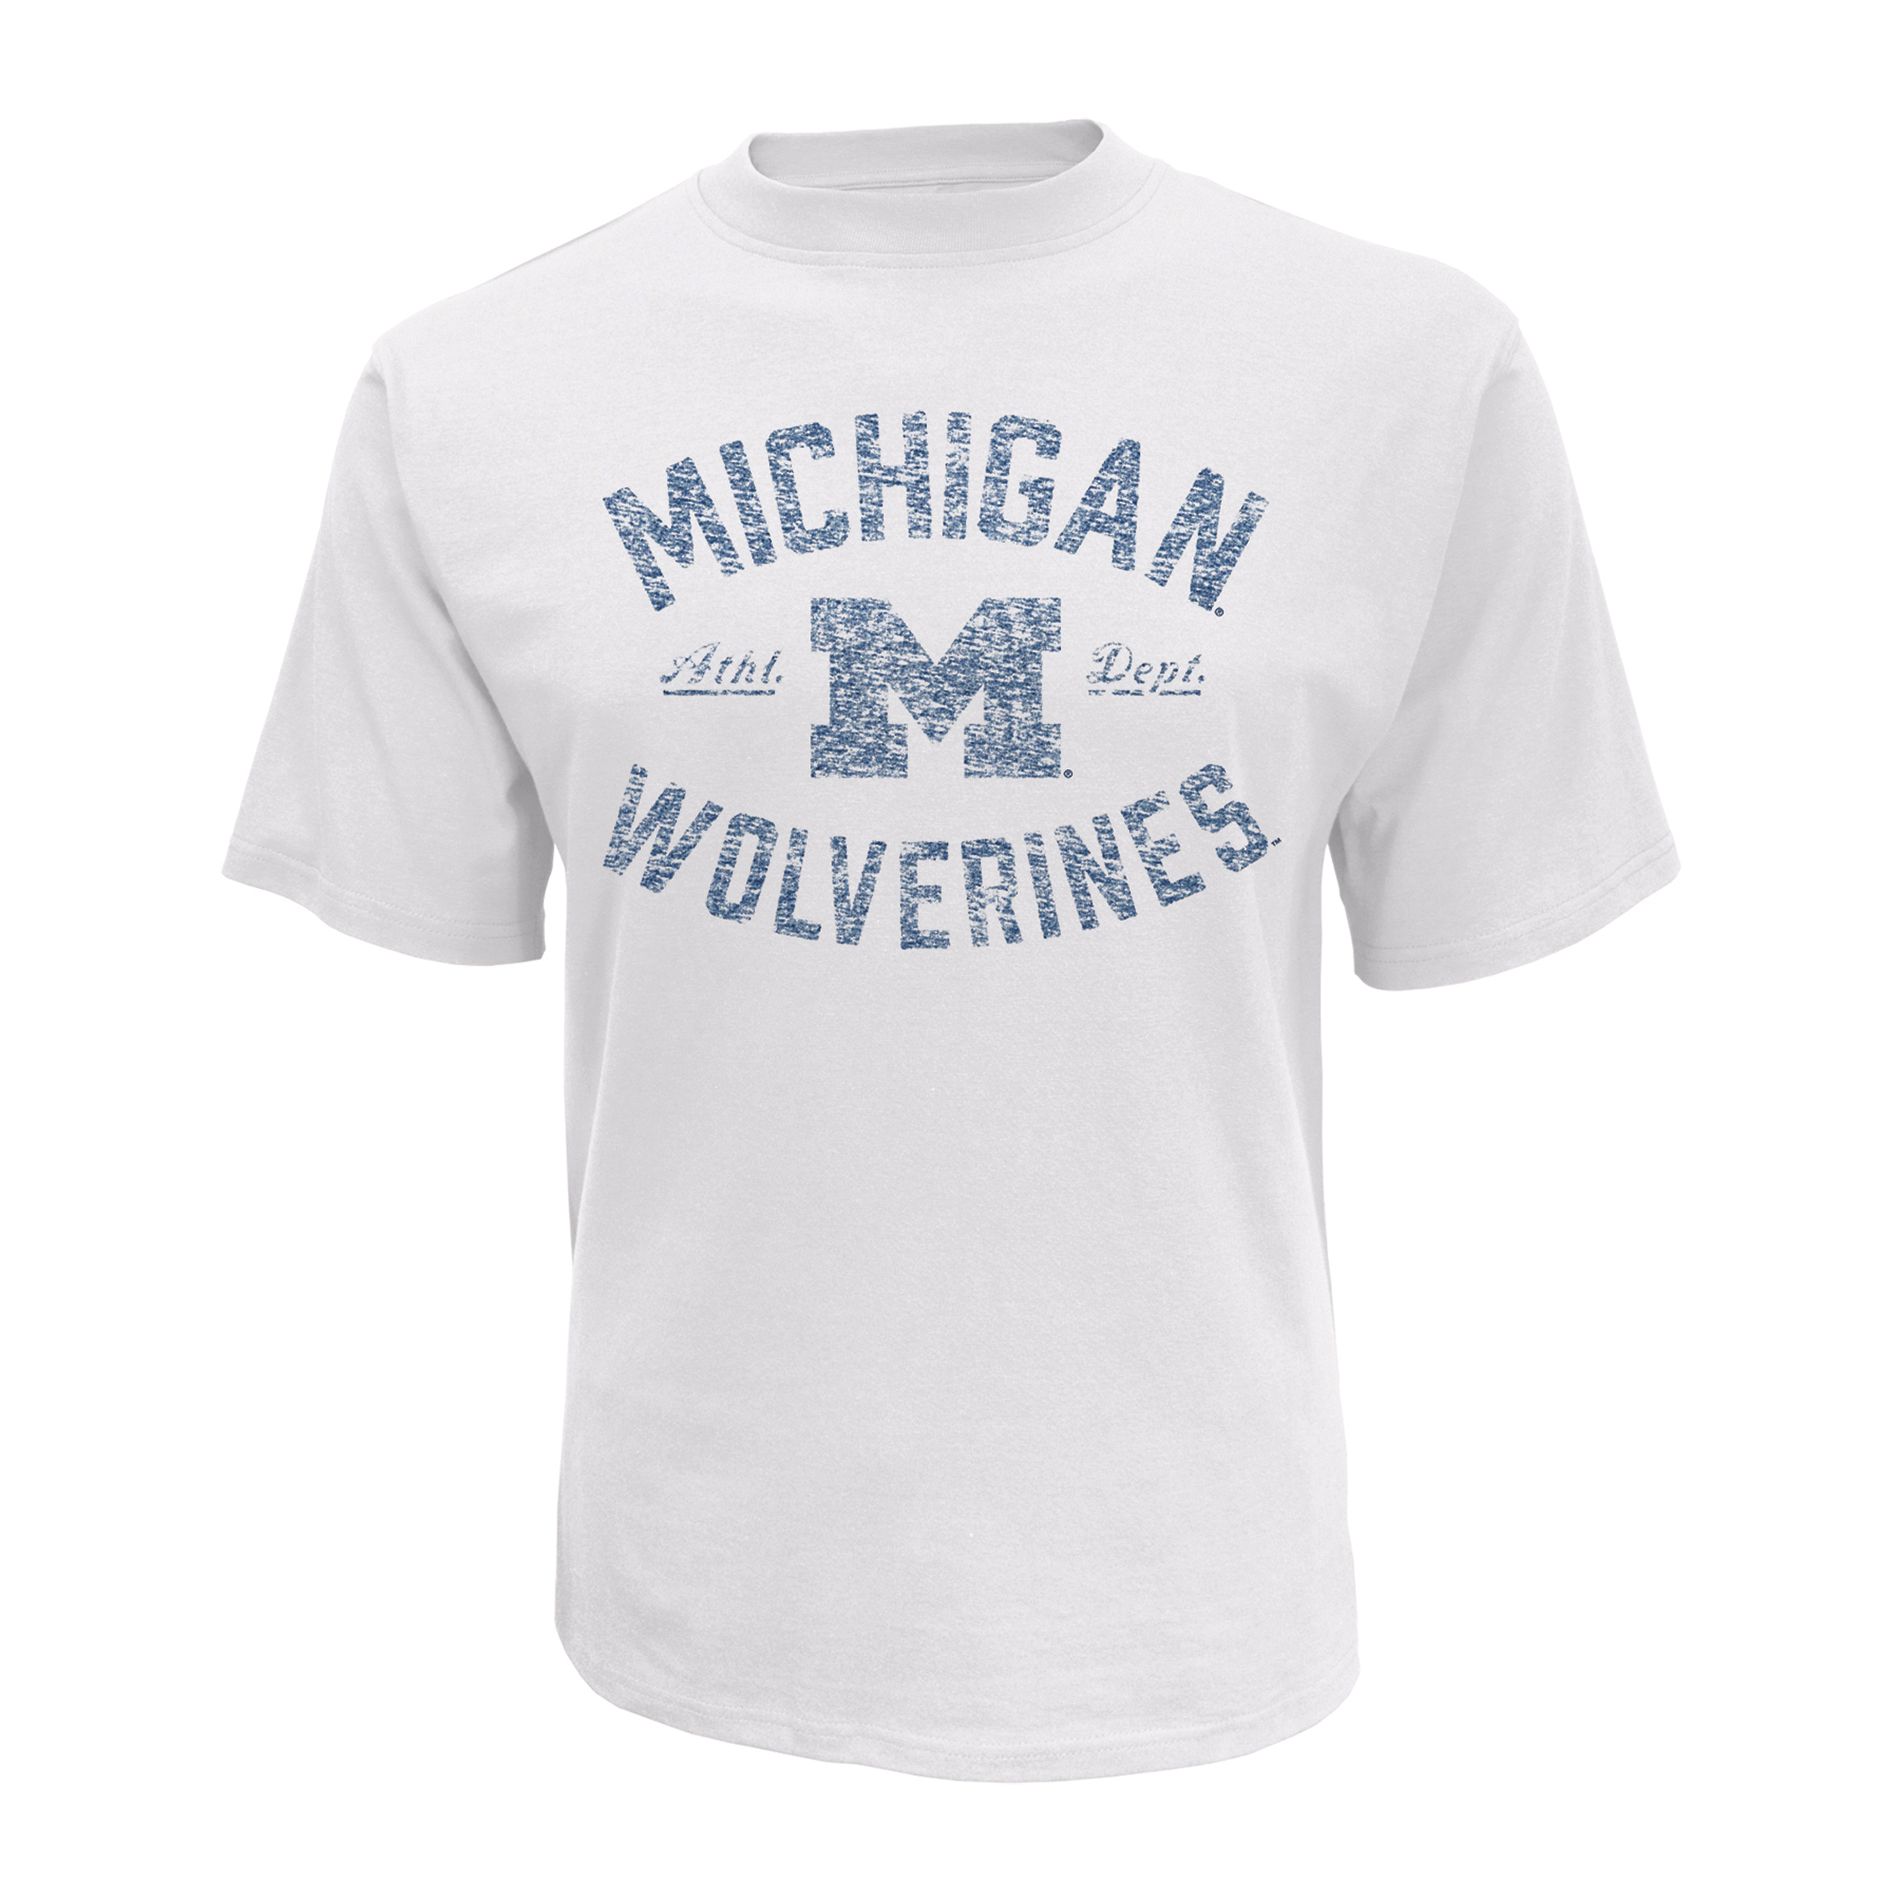 petite NCAA Men's Short-Sleeve T-Shirt - Michigan Wolverines, Size: XL